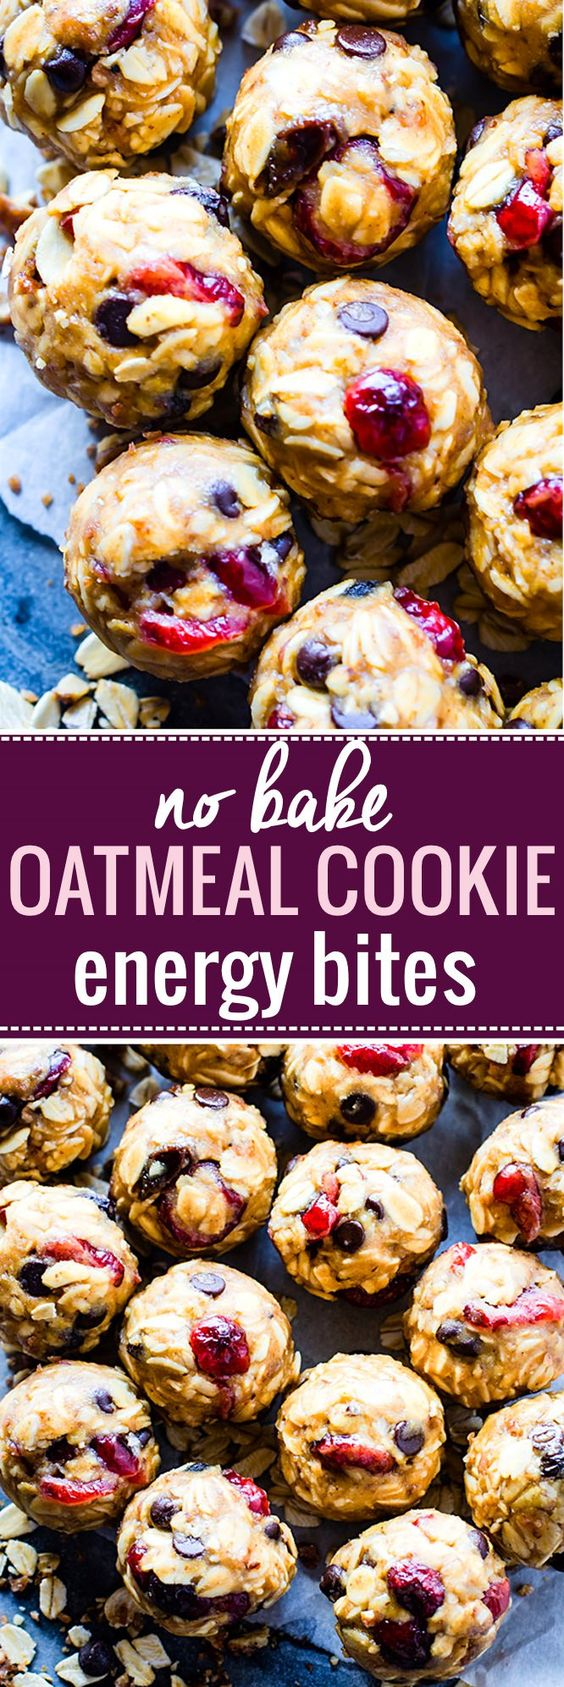 Gluten free No Bake Oatmeal Cookie Energy Bites for a healthy lunchbox ...